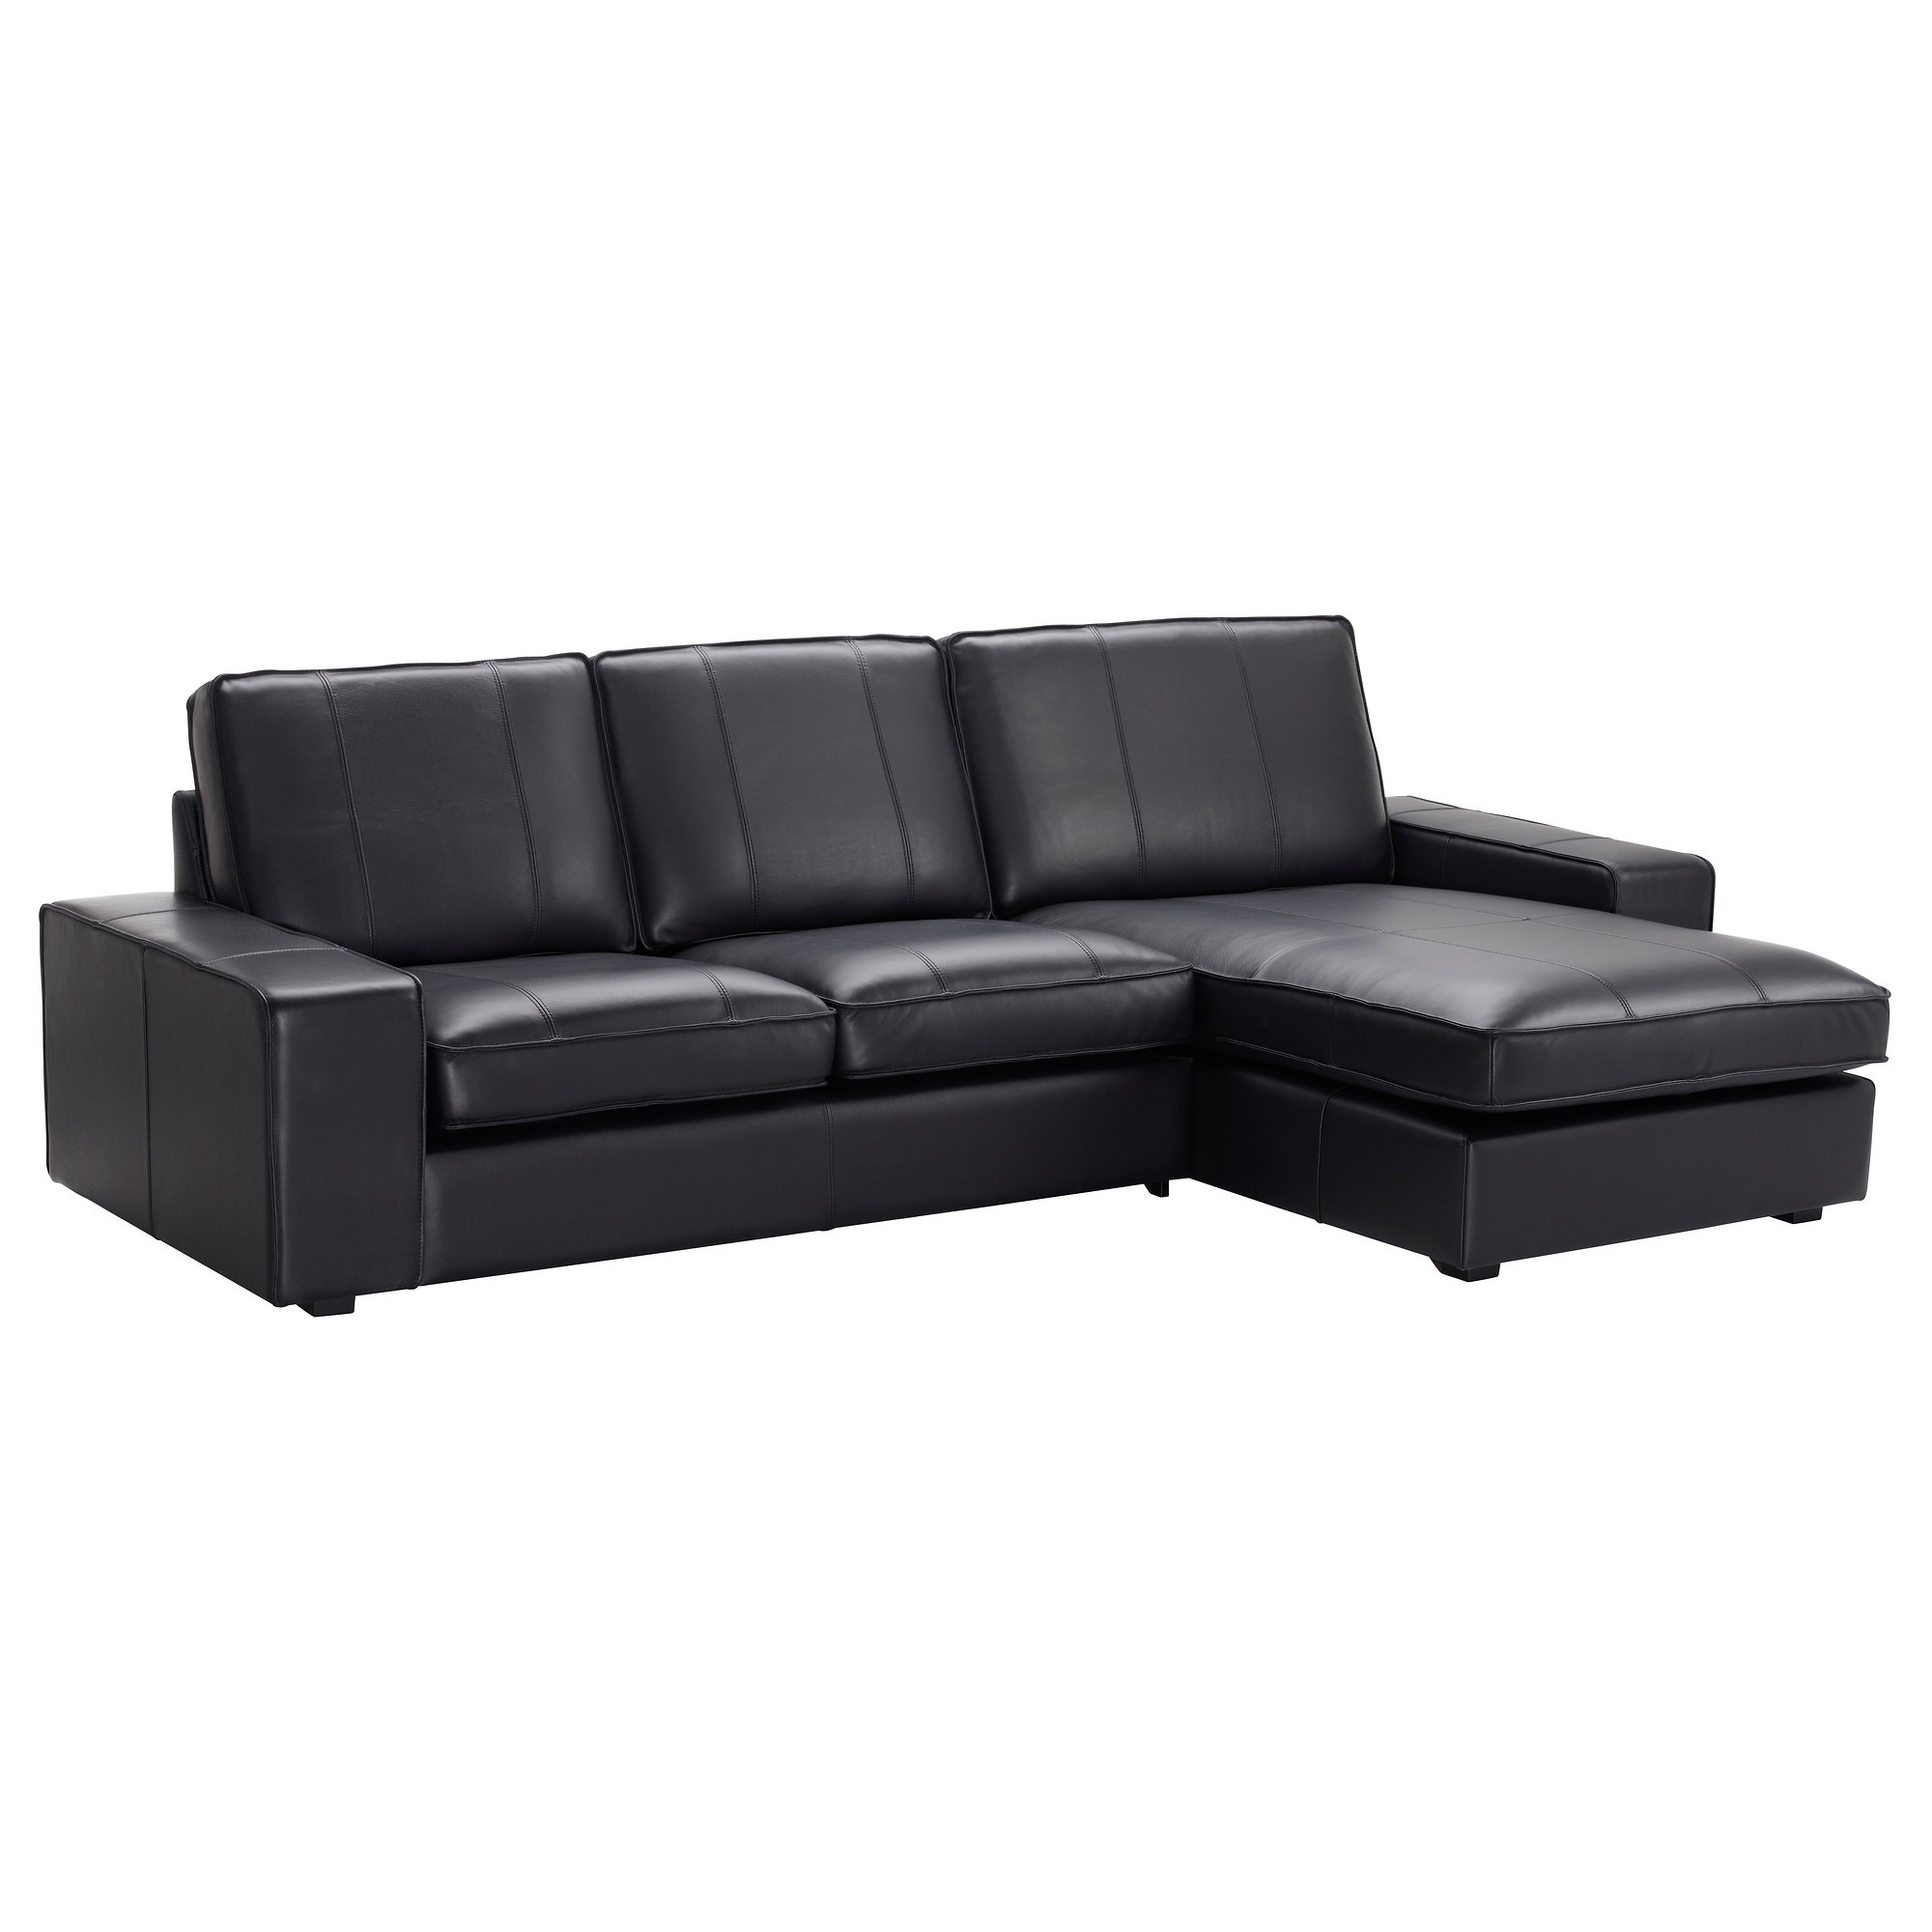 Canape cuir ikea 2 places canap id es de d coration for Canape cuir convertible 2 places